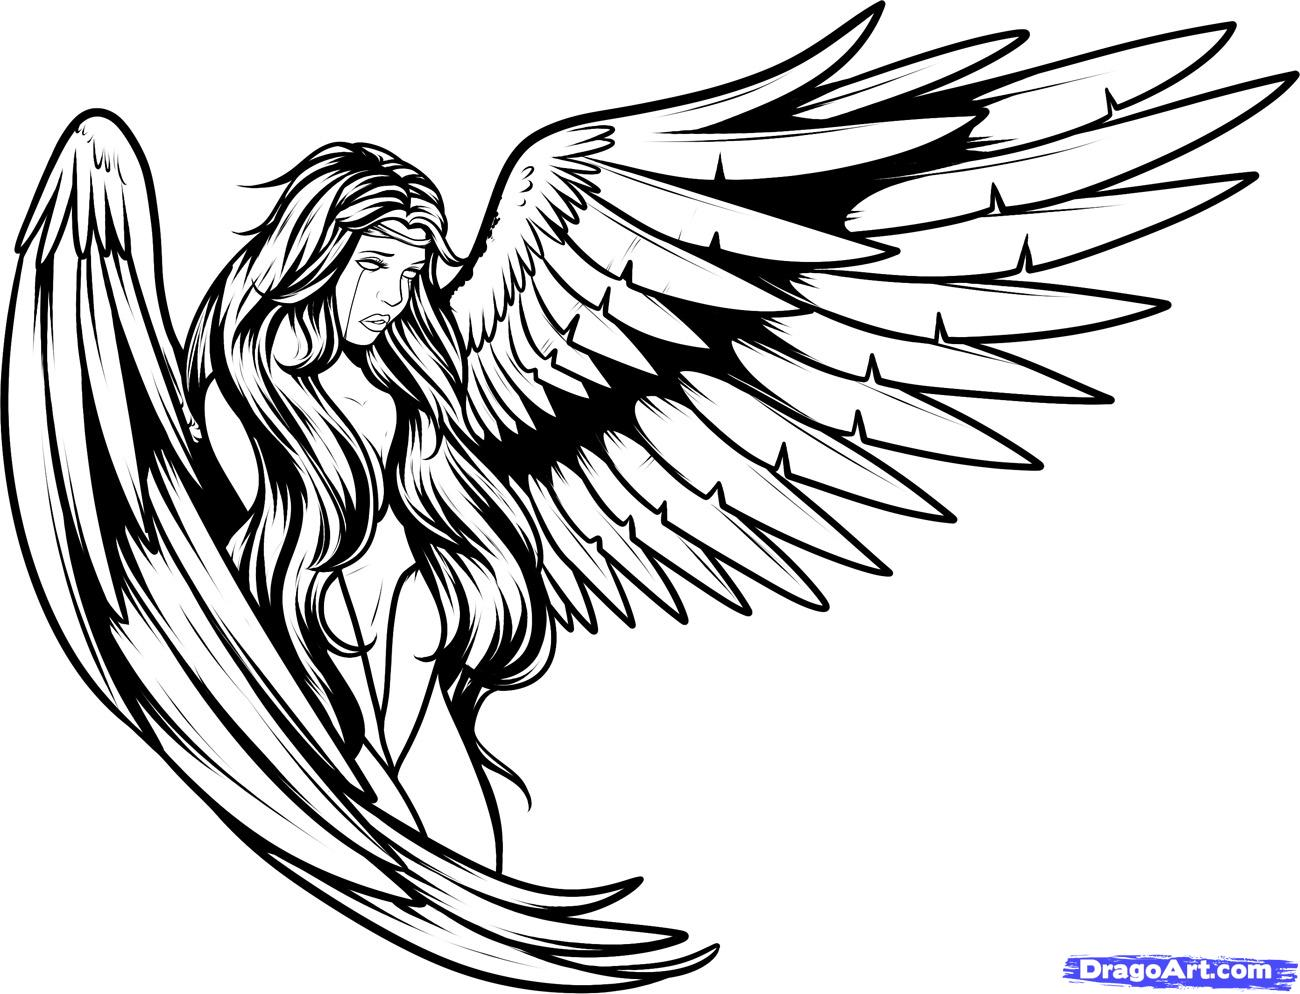 Angel clipart drawing graphic library library Angel Outline Drawing | Free download best Angel Outline Drawing on ... graphic library library